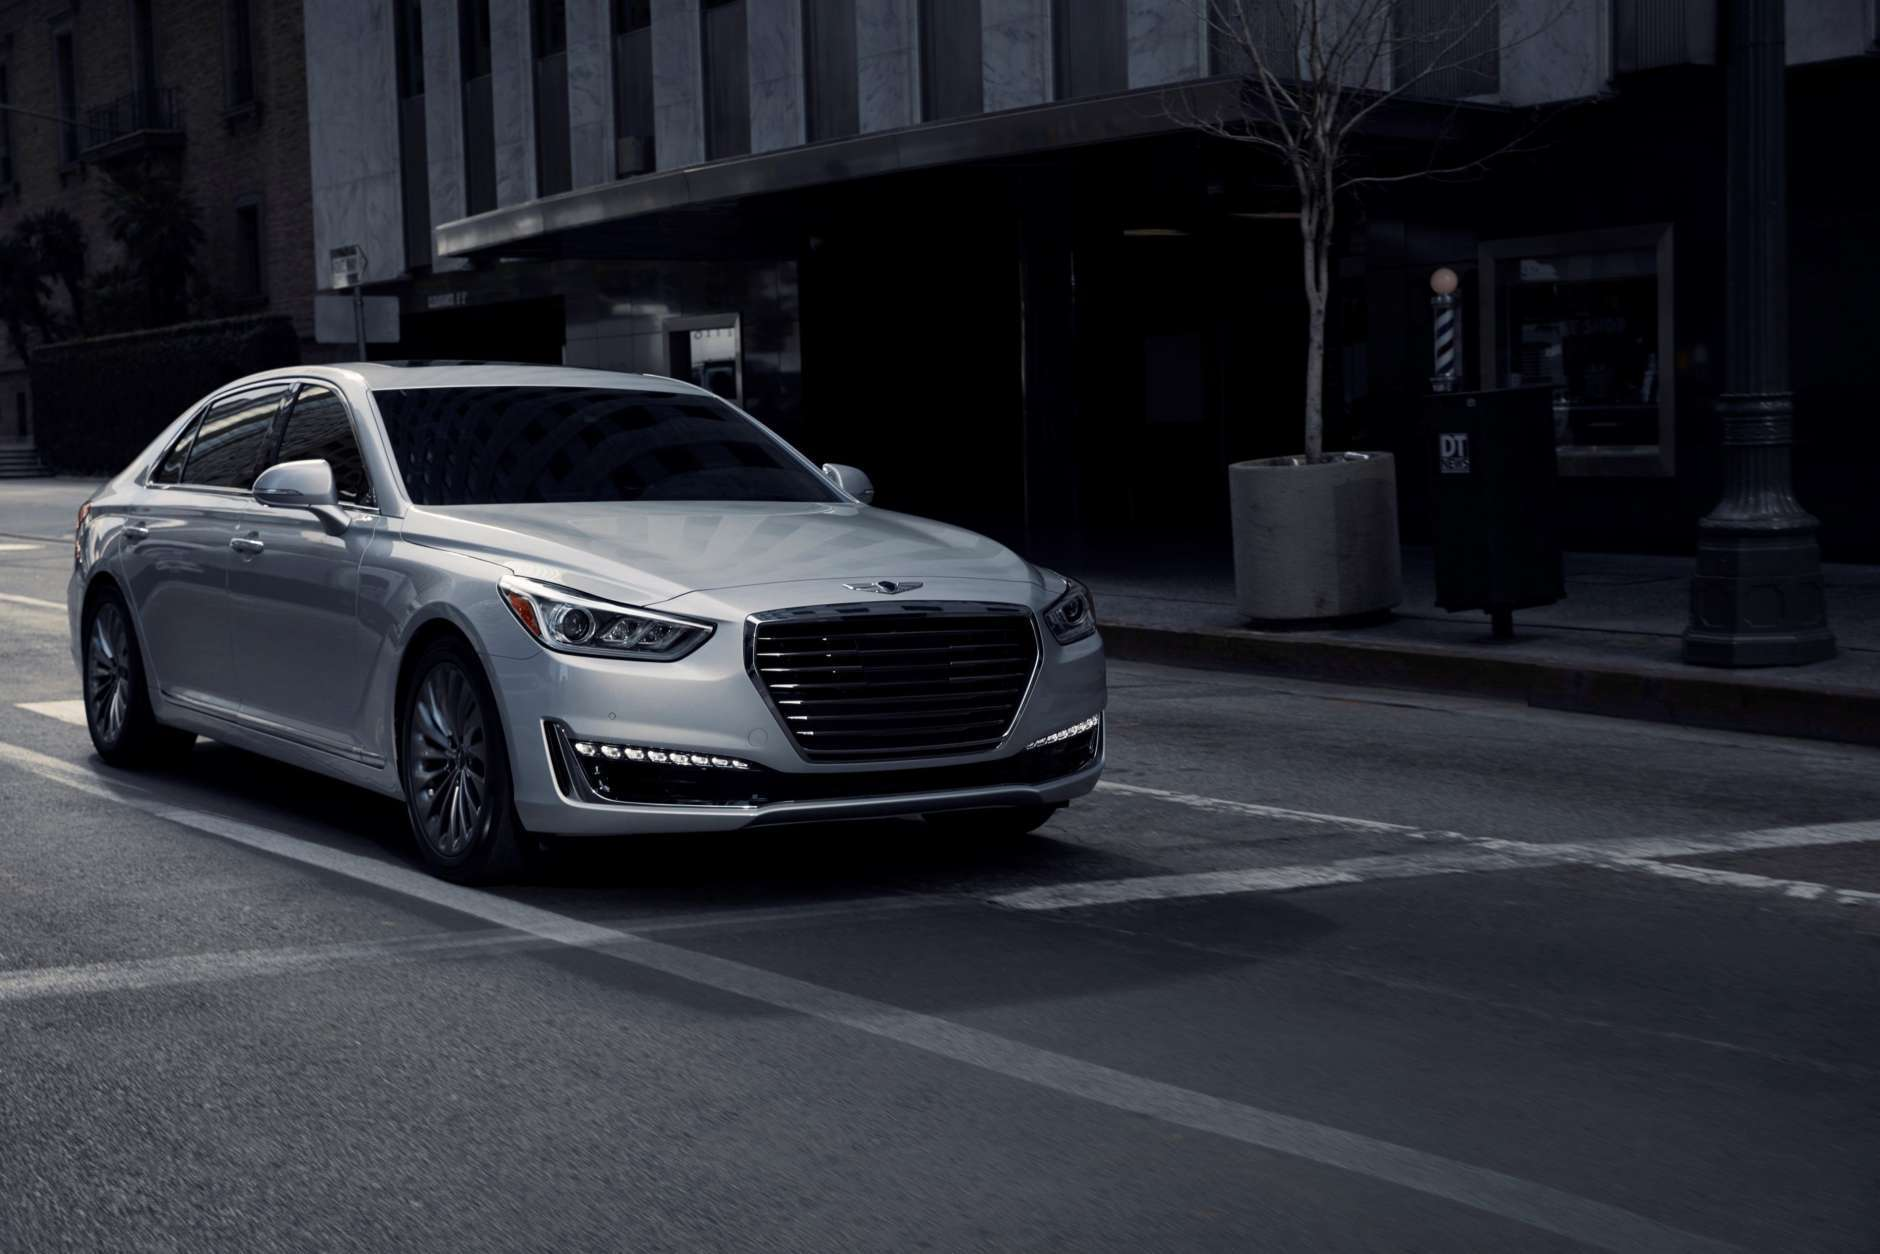 The Genesis G90 also picked up a Top Safety Pick+ award. (Courtesy Genesis)